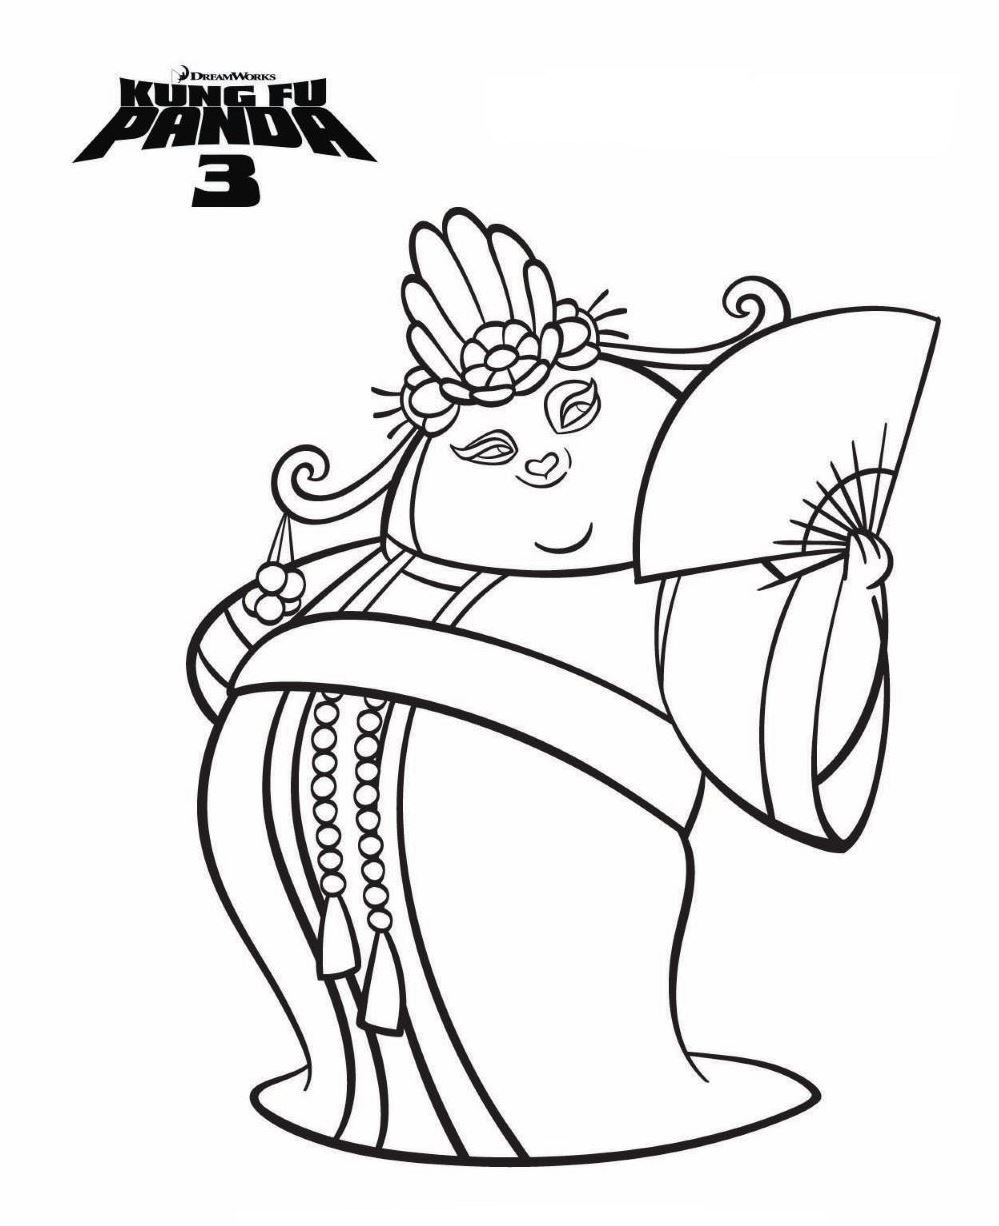 kung fu panda 3 coloring pages Kids n fun.| 7 coloring pages of Kung Fu Panda 3 kung fu panda 3 coloring pages